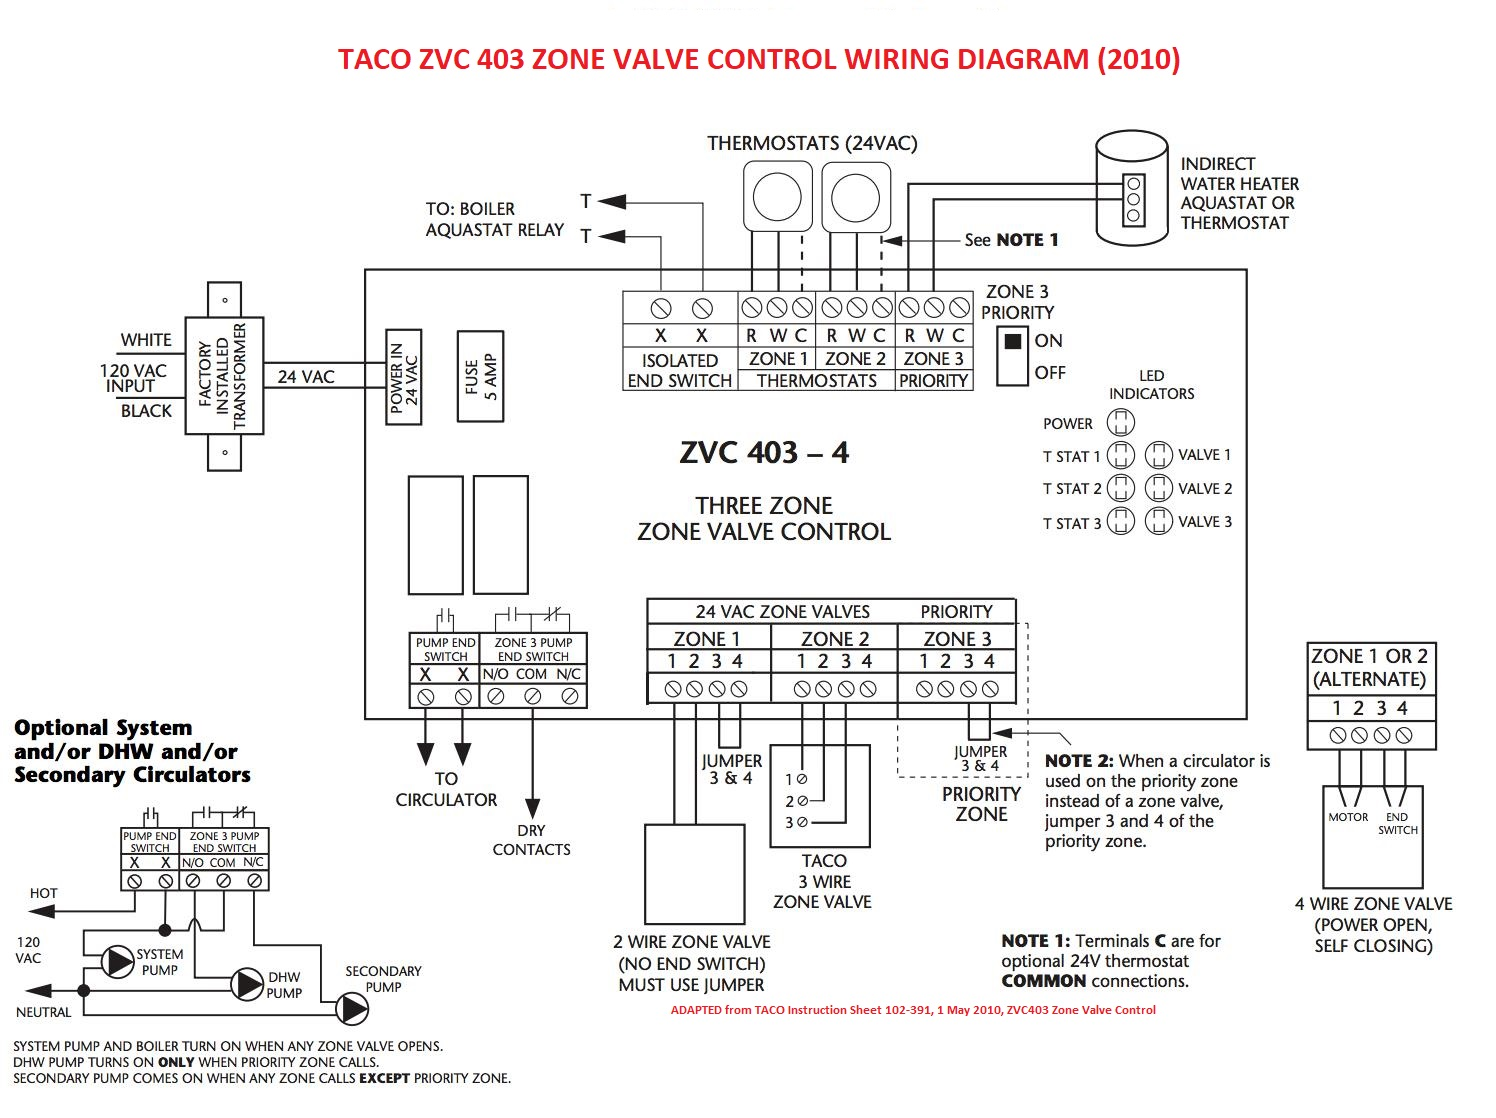 Signalstat Wiring Sheet Click For Larger Version Wire Center 1972 Opelgt Electrical Instrument Panels Diagram Binatanicom Zone Valve Installation Instructions Guide To Heating Rh Inspectapedia Com